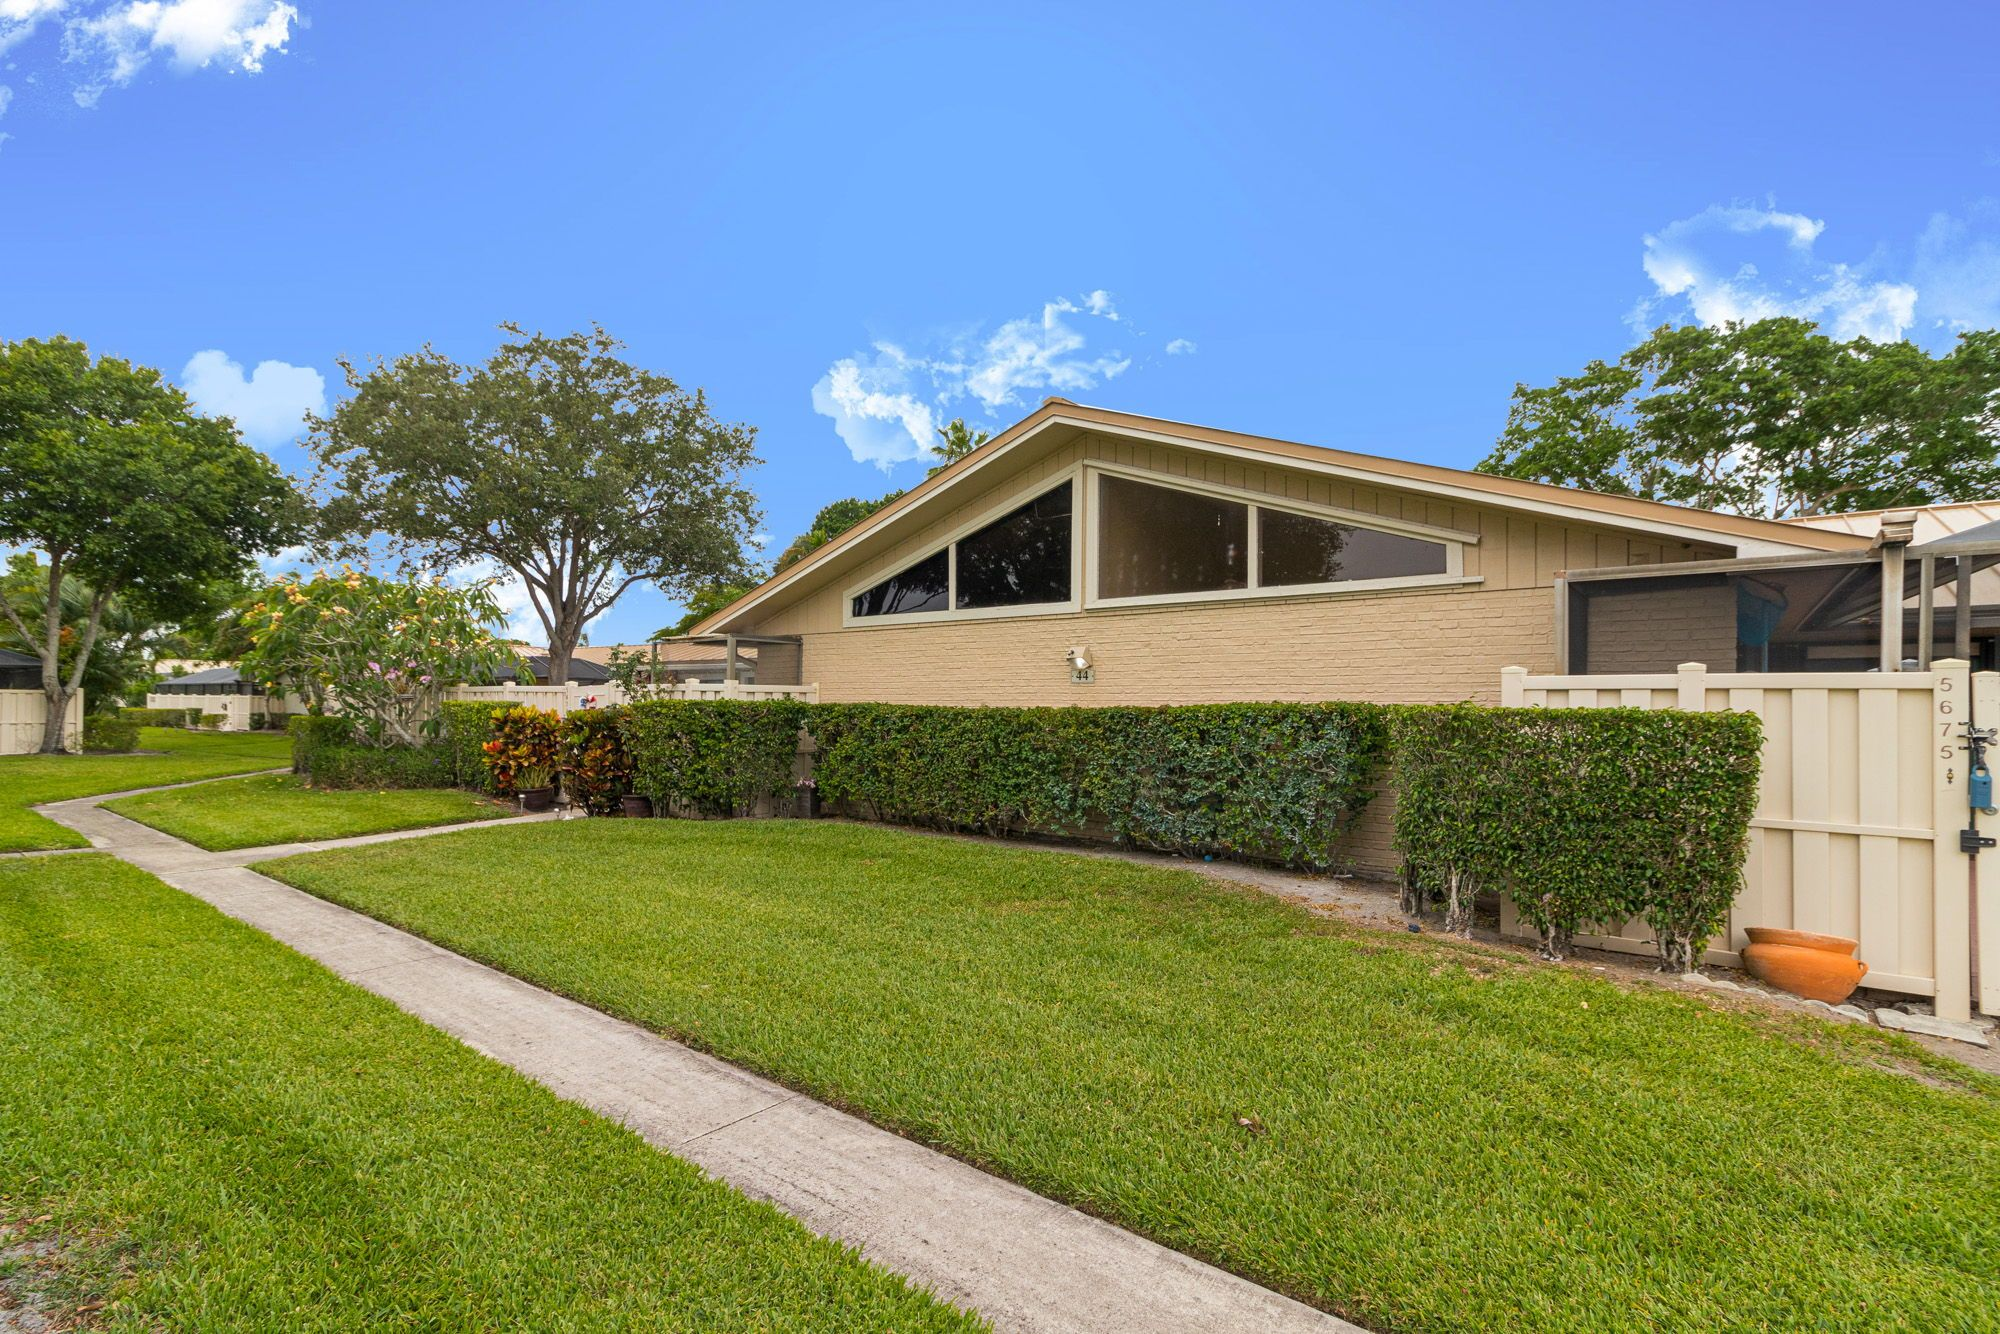 6e5d62f12697b59867c0cf91e7e6bb7b - Westwood Gardens Palm Beach Gardens For Rent